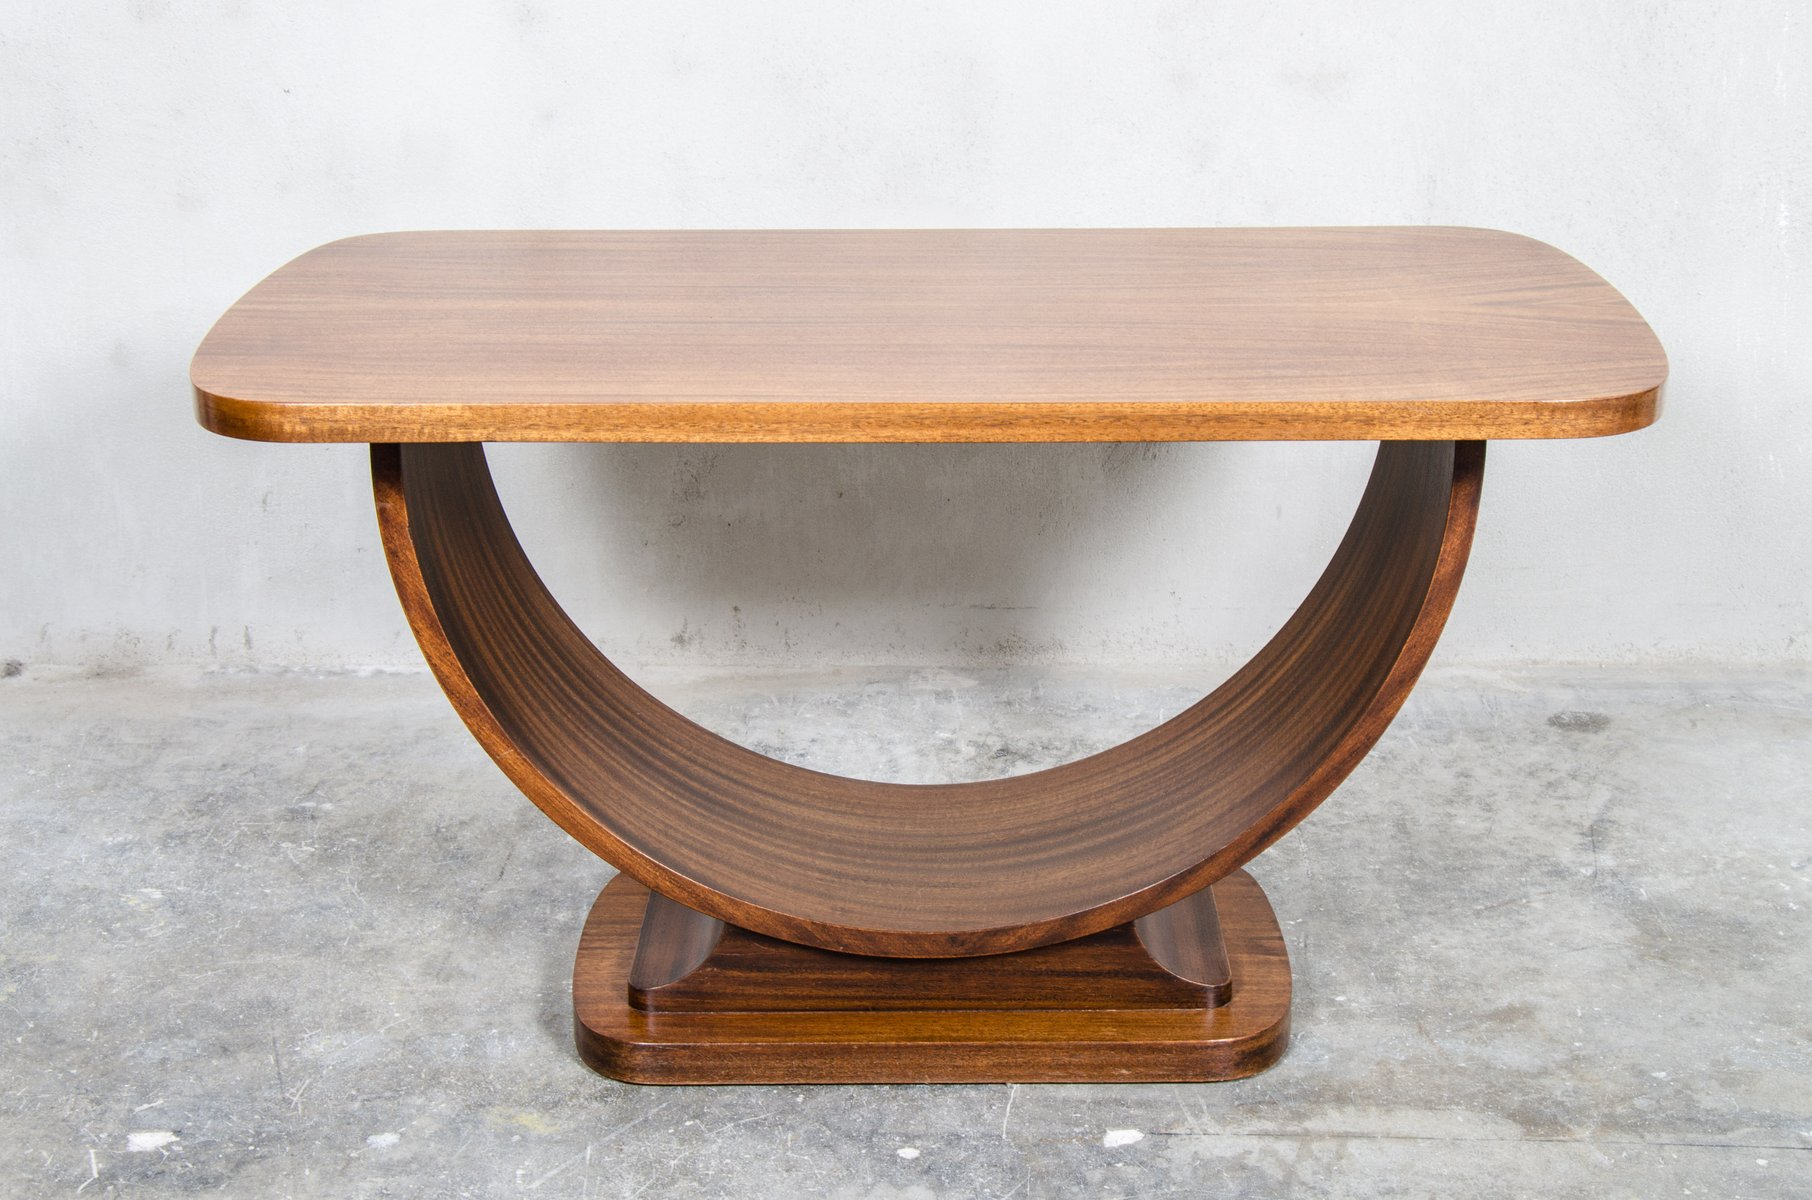 Belgian Teak Art Deco Side Table, 1920s 5. $986.00. Price Per Piece